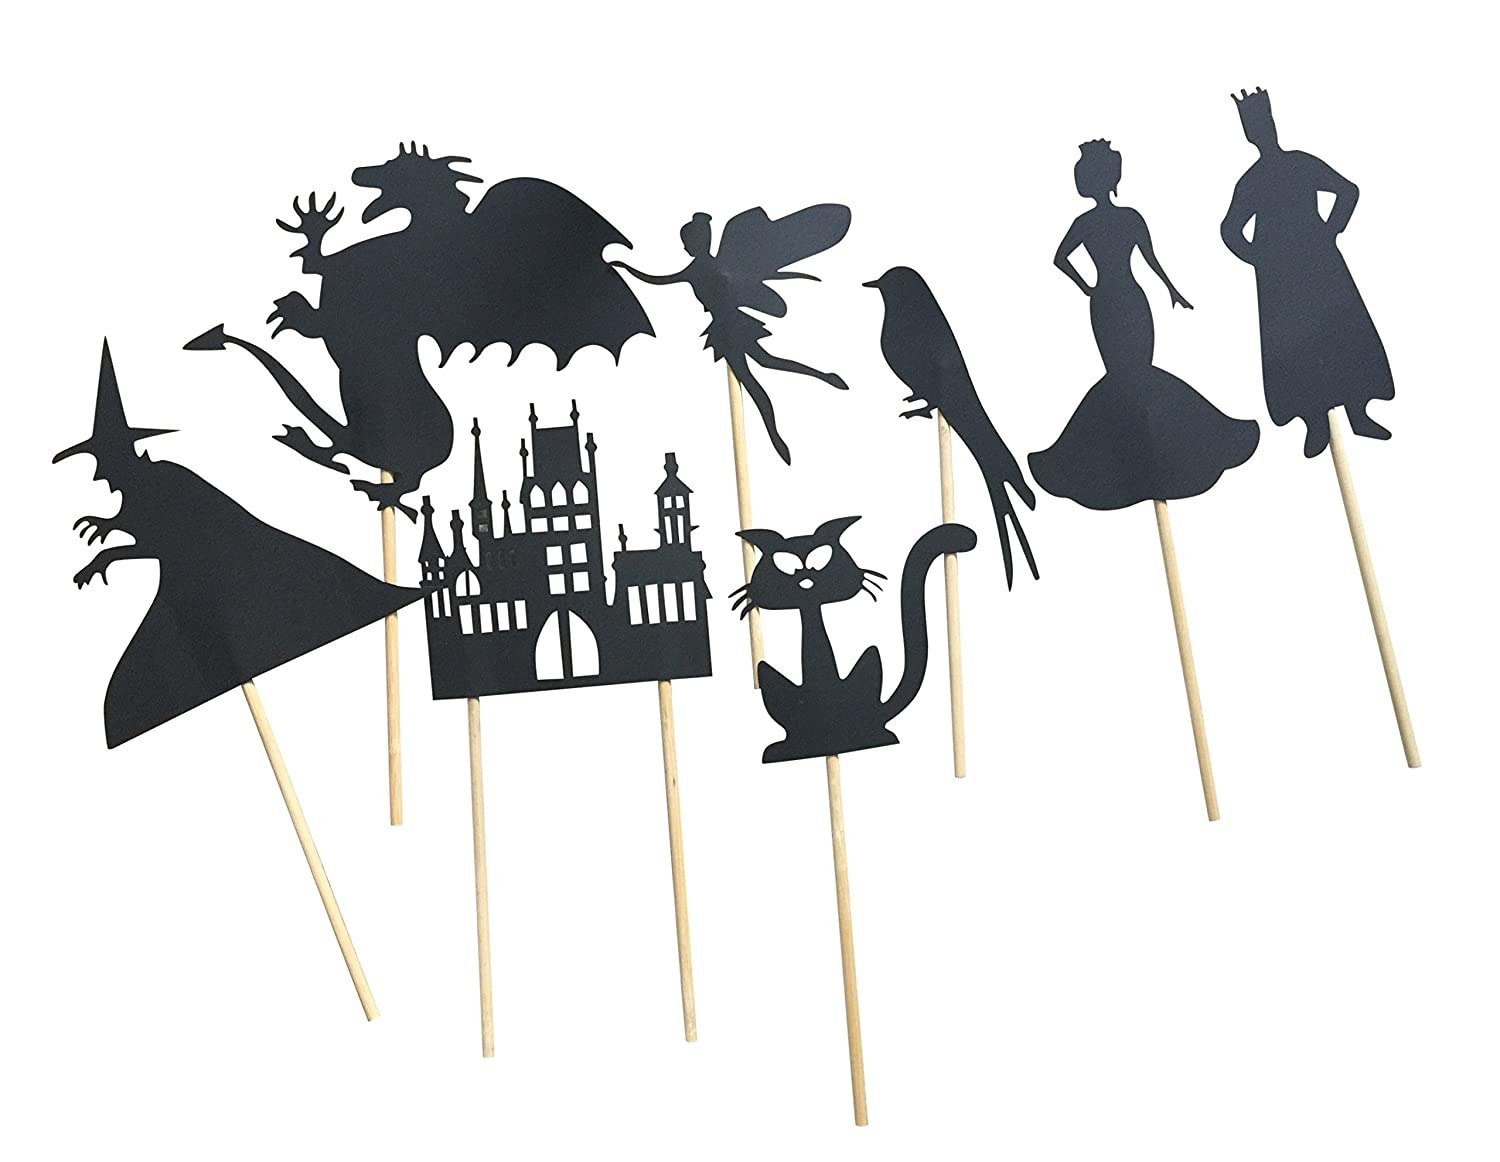 Buy Shadow Puppets by Imagination Online at Low Prices in India - Amazon.in